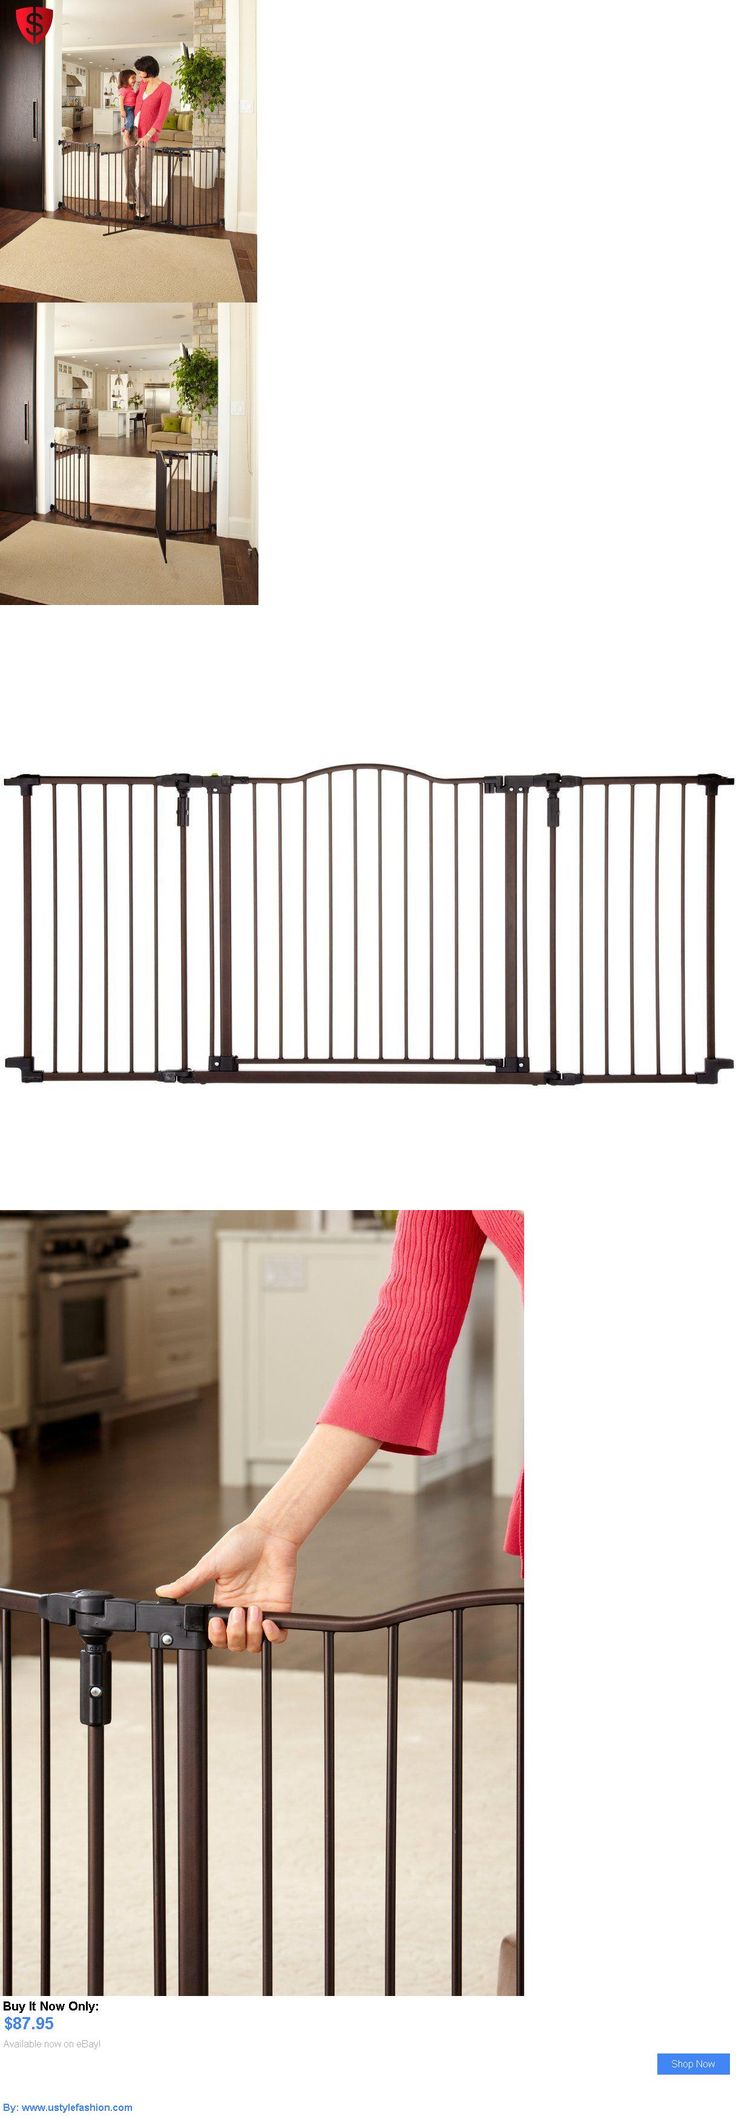 Baby Safety Gates: Metal Baby Gate Safety Walk Pet Child Fence Toddler Infant Step Easy Wide Door BUY IT NOW ONLY: $87.95 #ustylefashionBabySafetyGates OR #ustylefashion